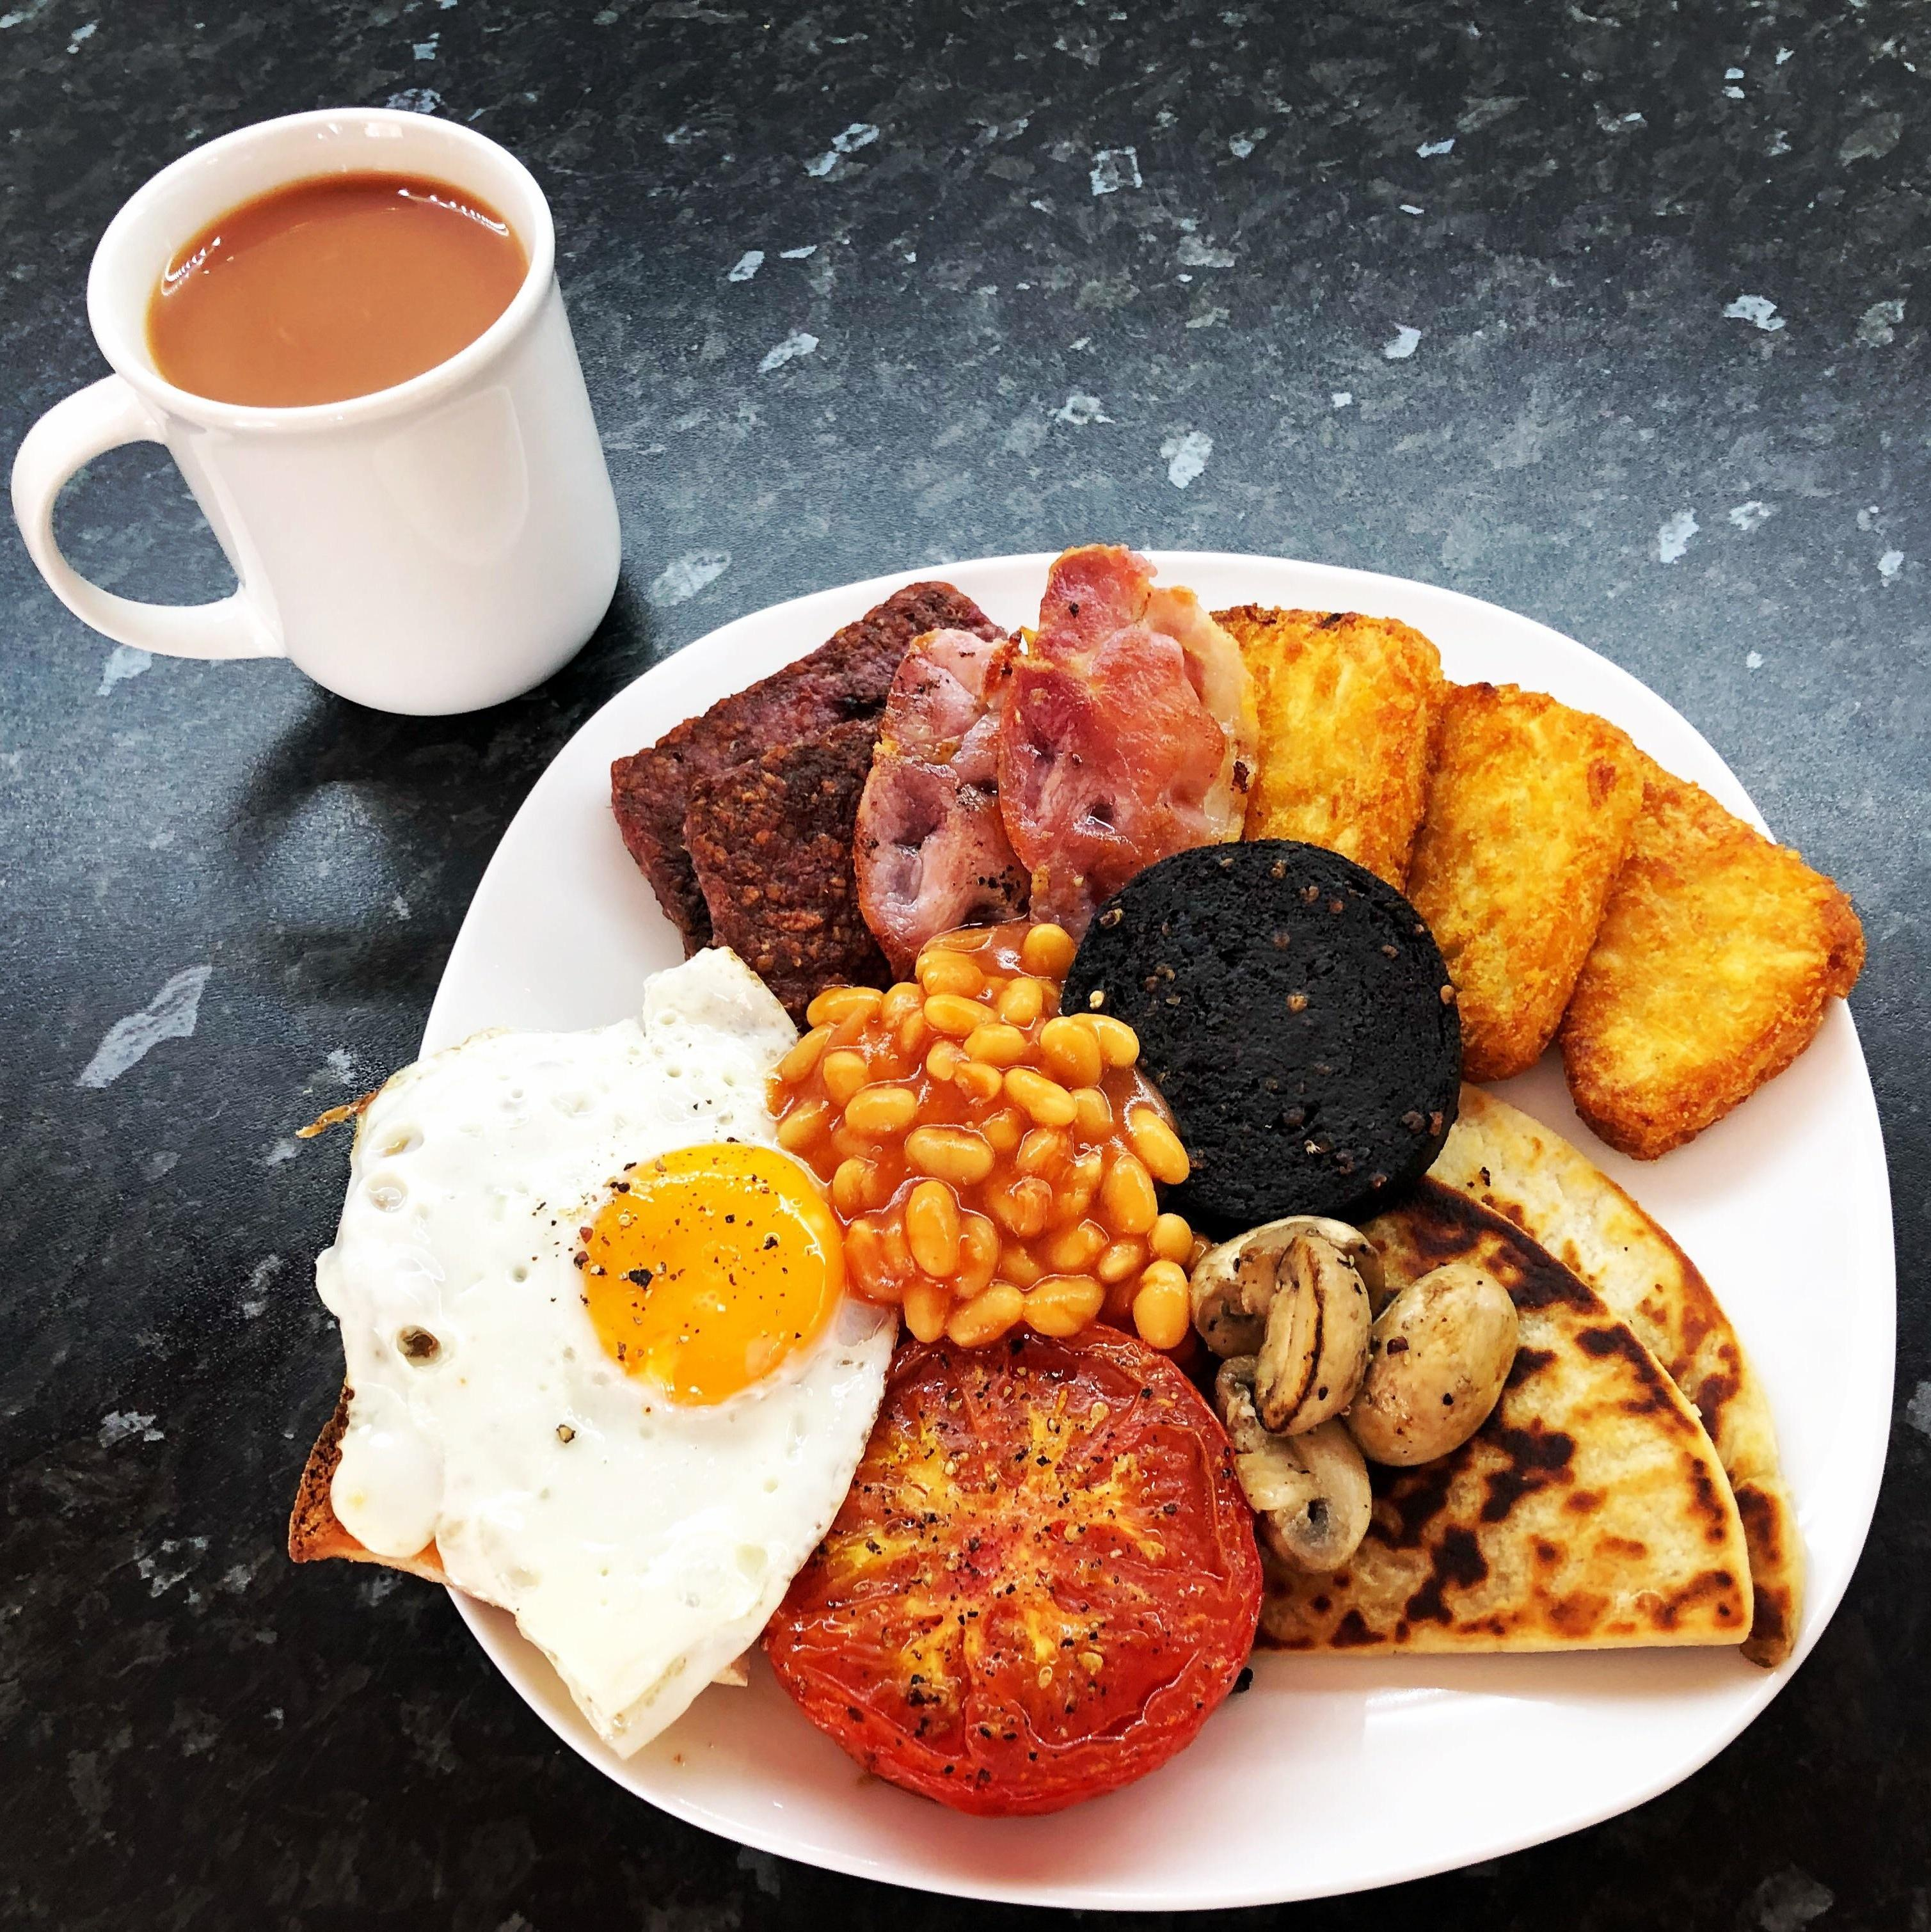 A plate containing a full Scottish breakfast